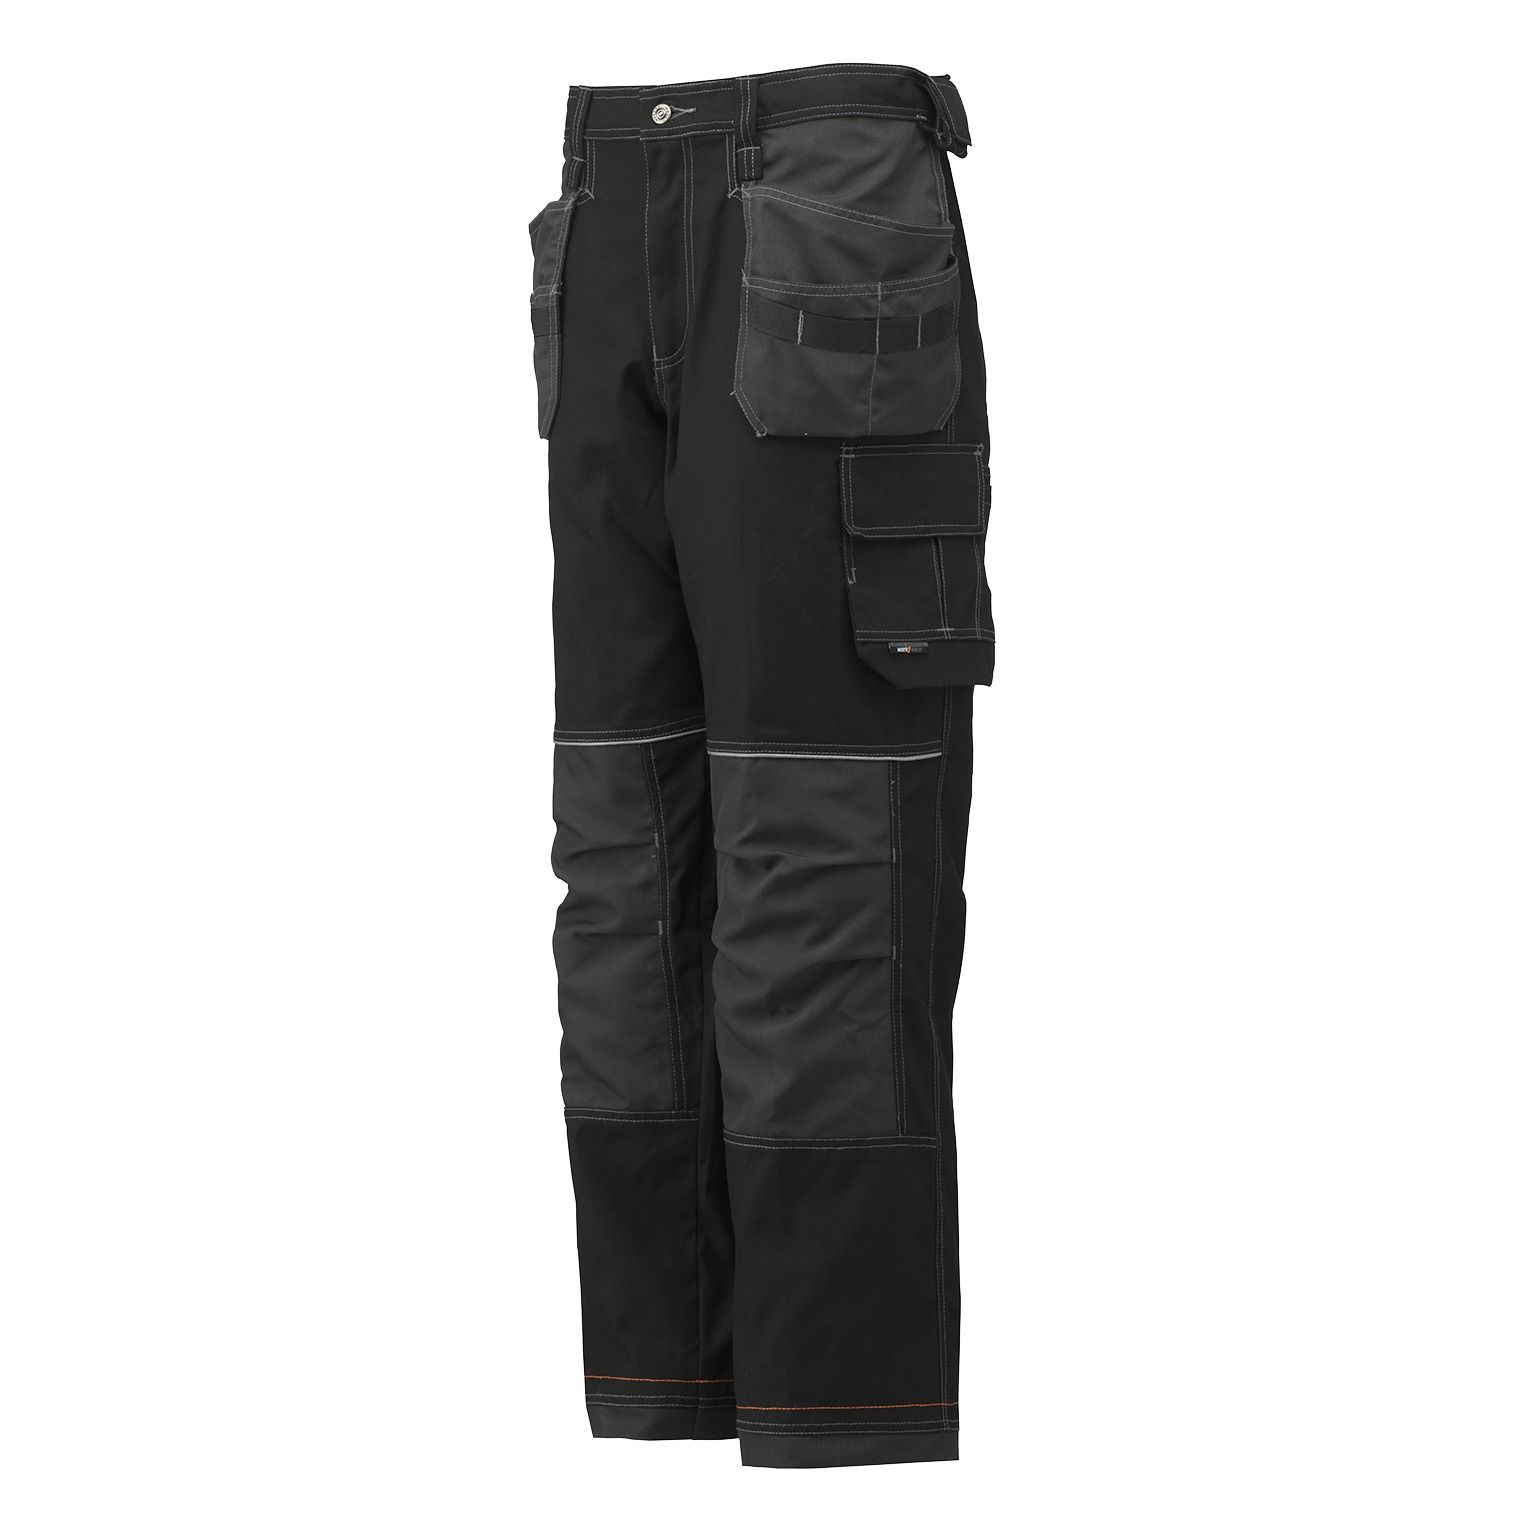 Pantalon de travail Chelsea Construction Helly Hansen - Noir